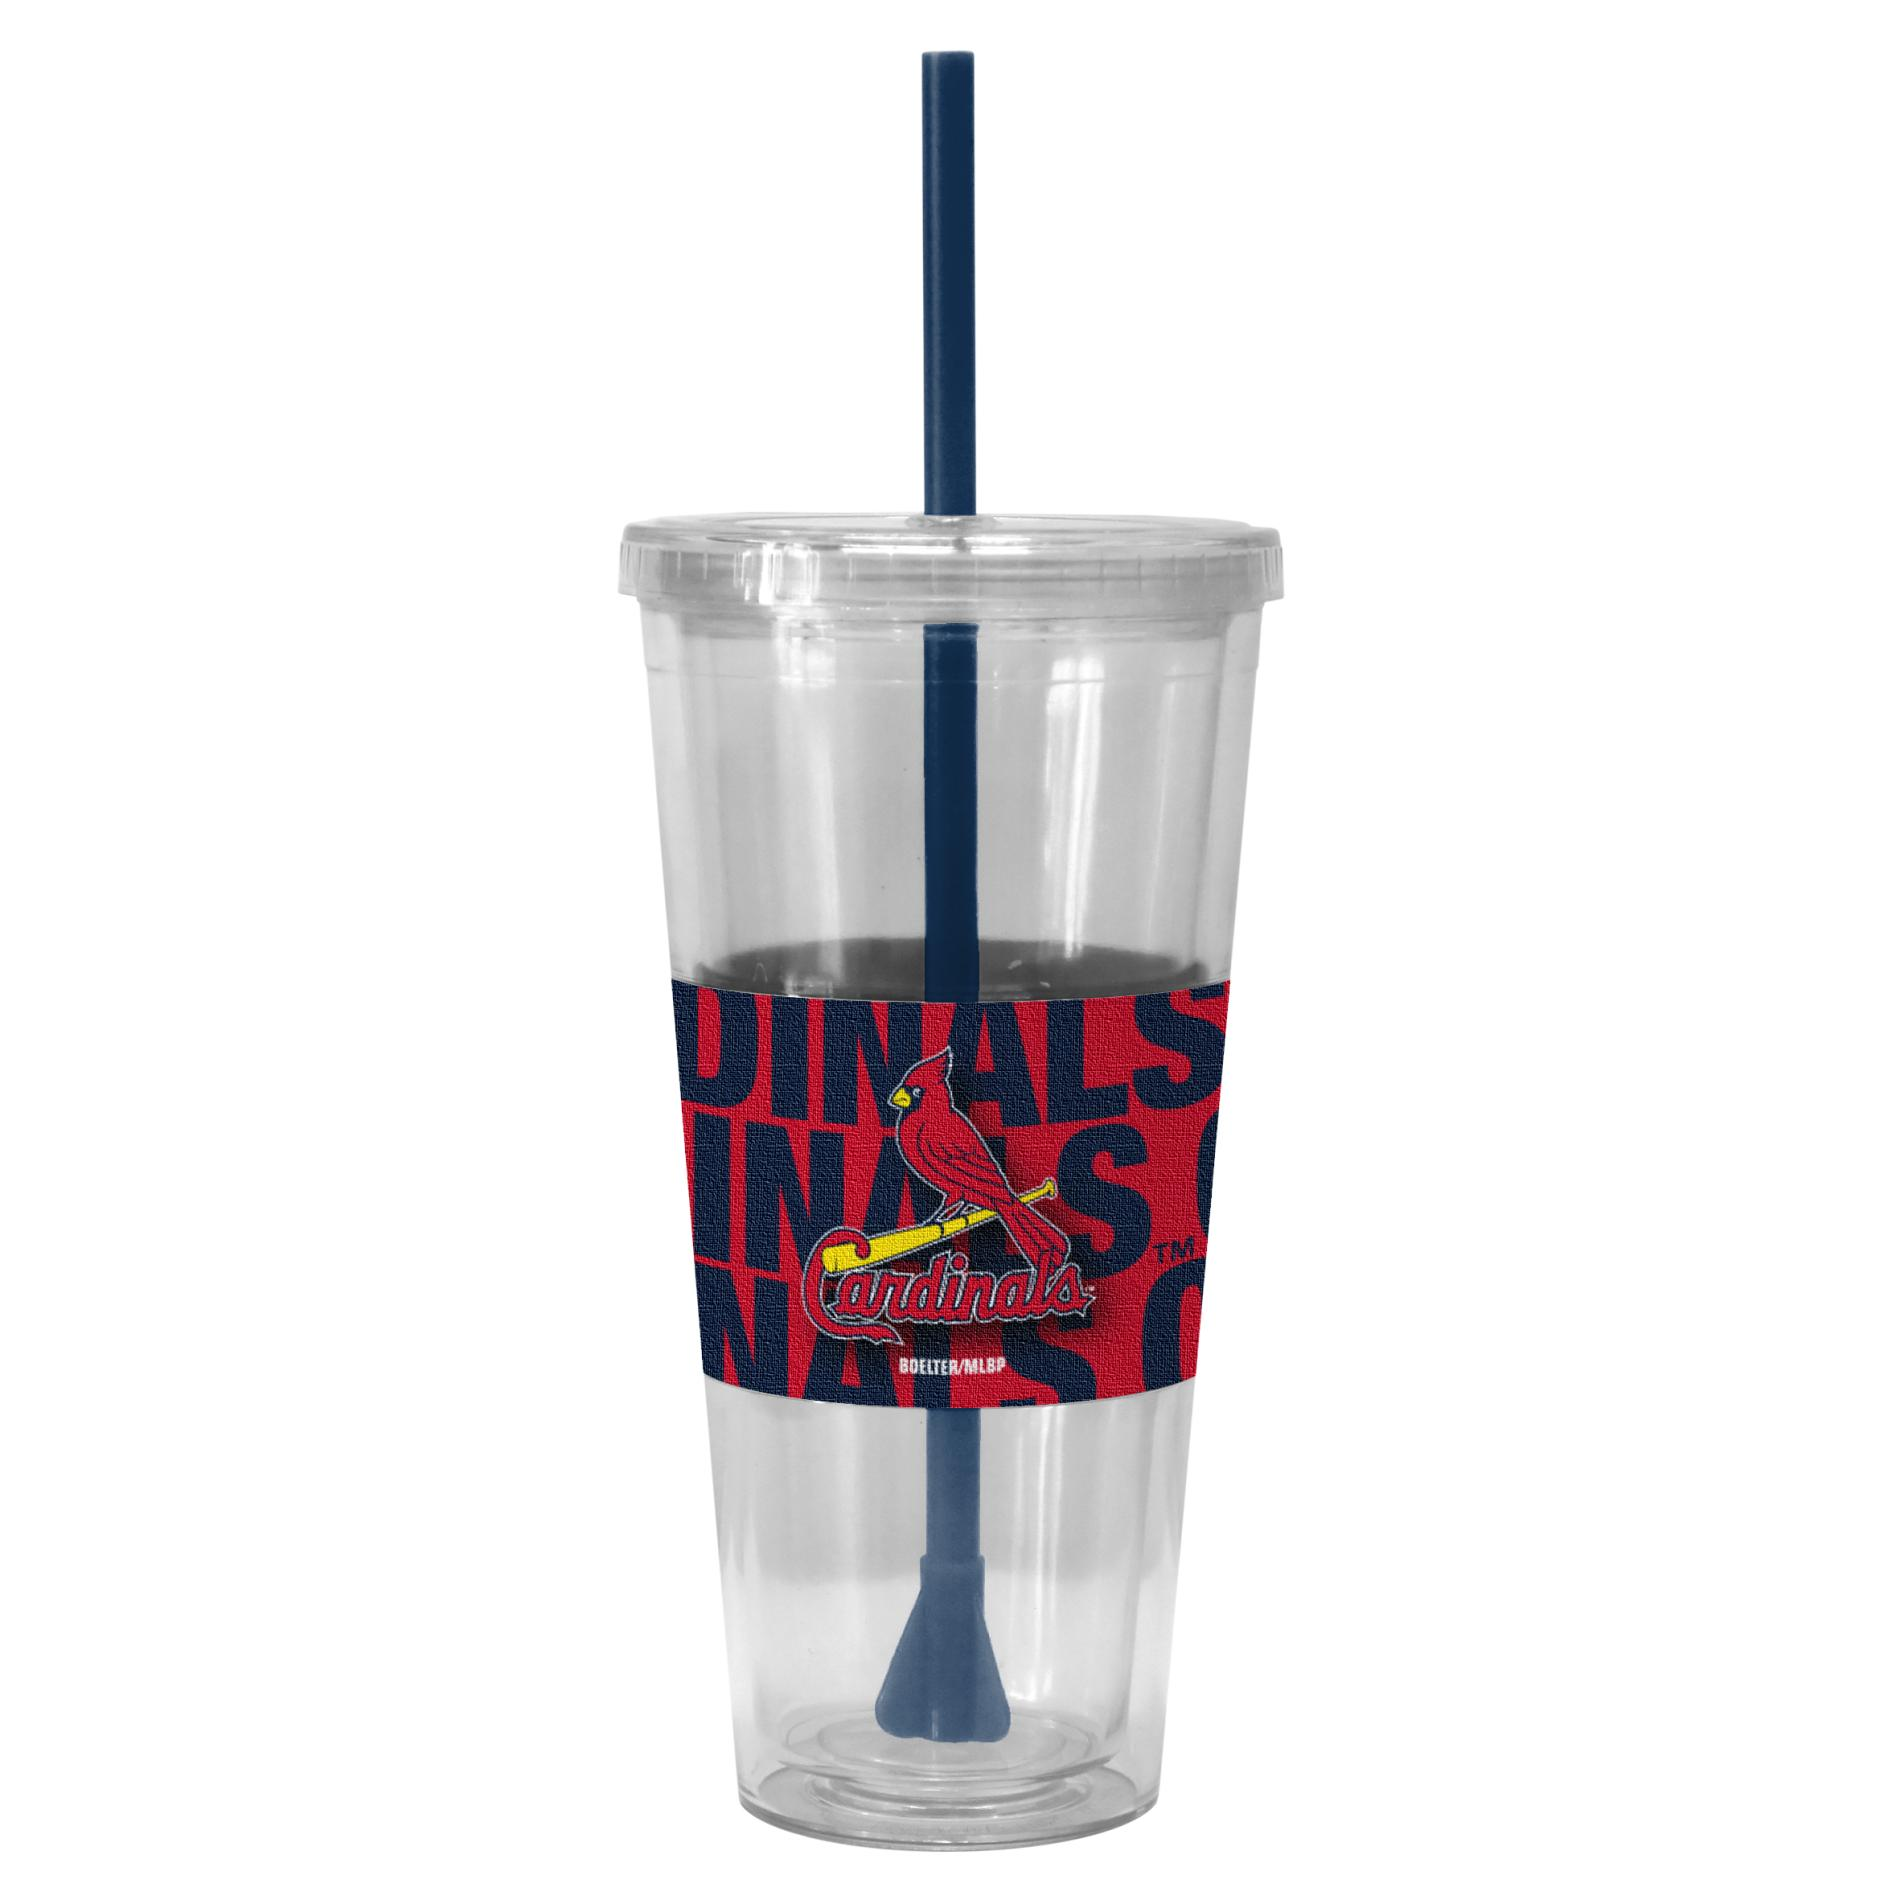 MLB Straw Cup - St. Louis Cardinals 046W002466014002